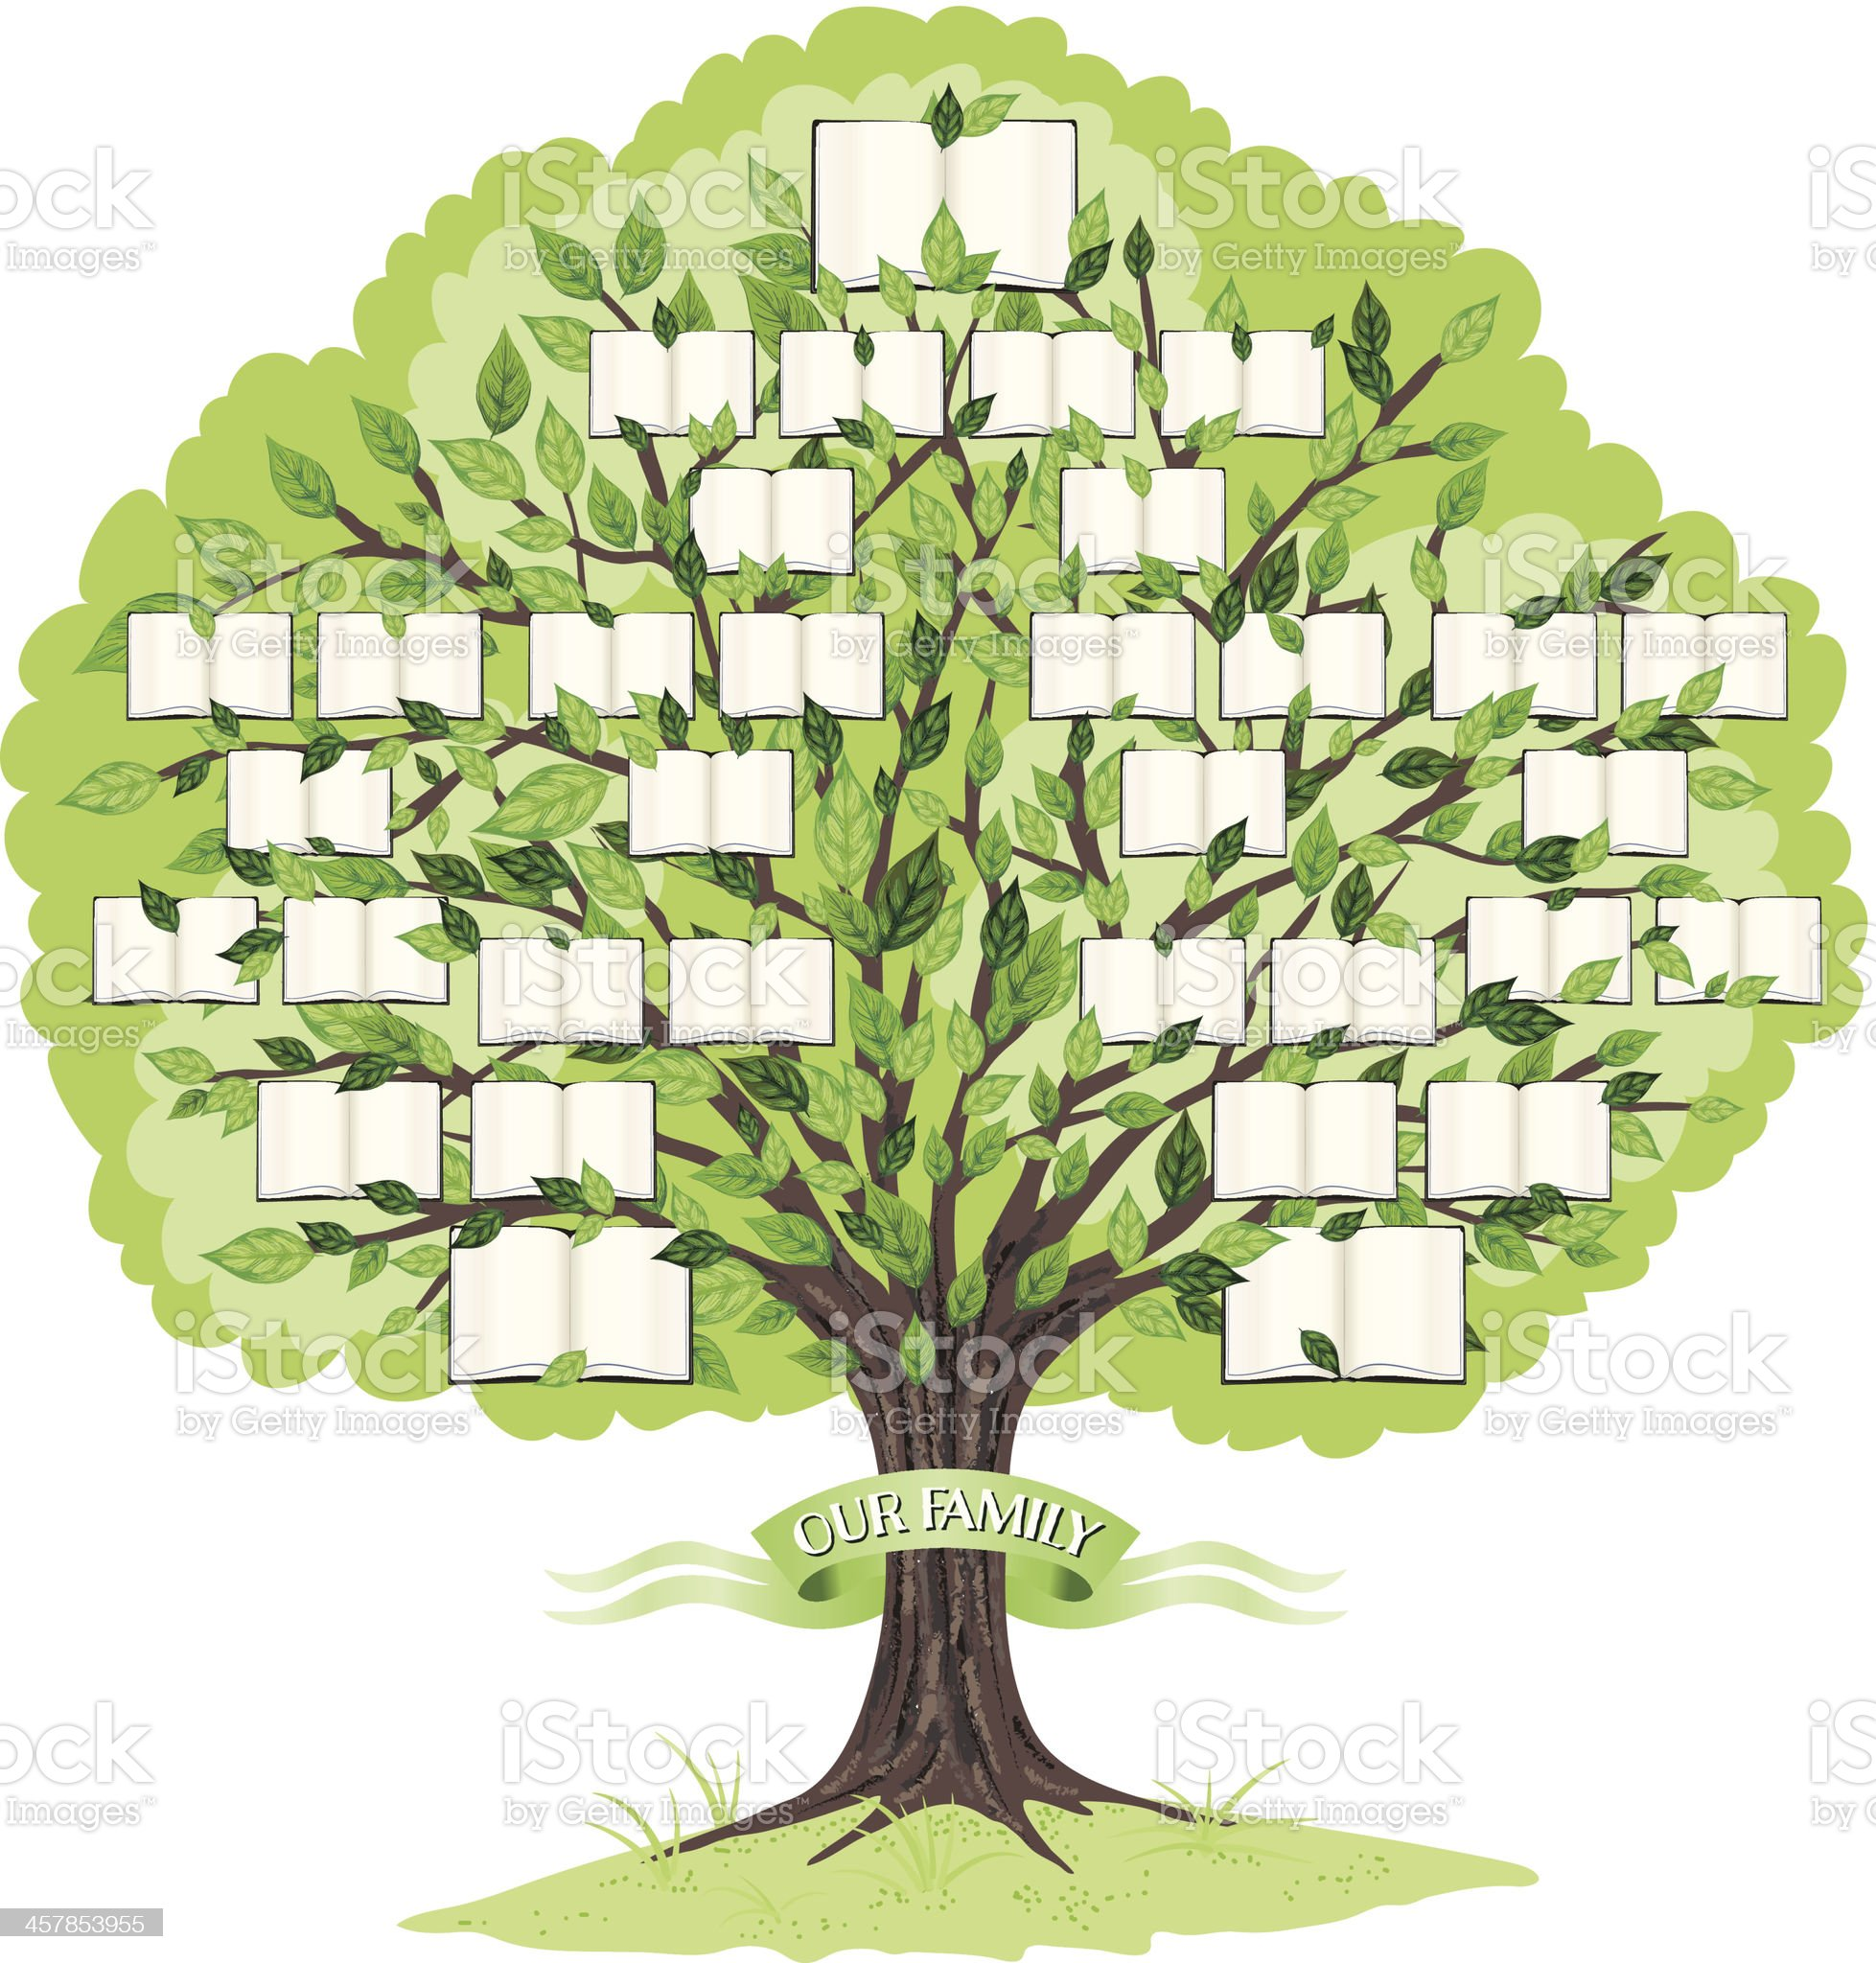 Family Tree Template royalty-free family tree template stock vector art & more images of family tree